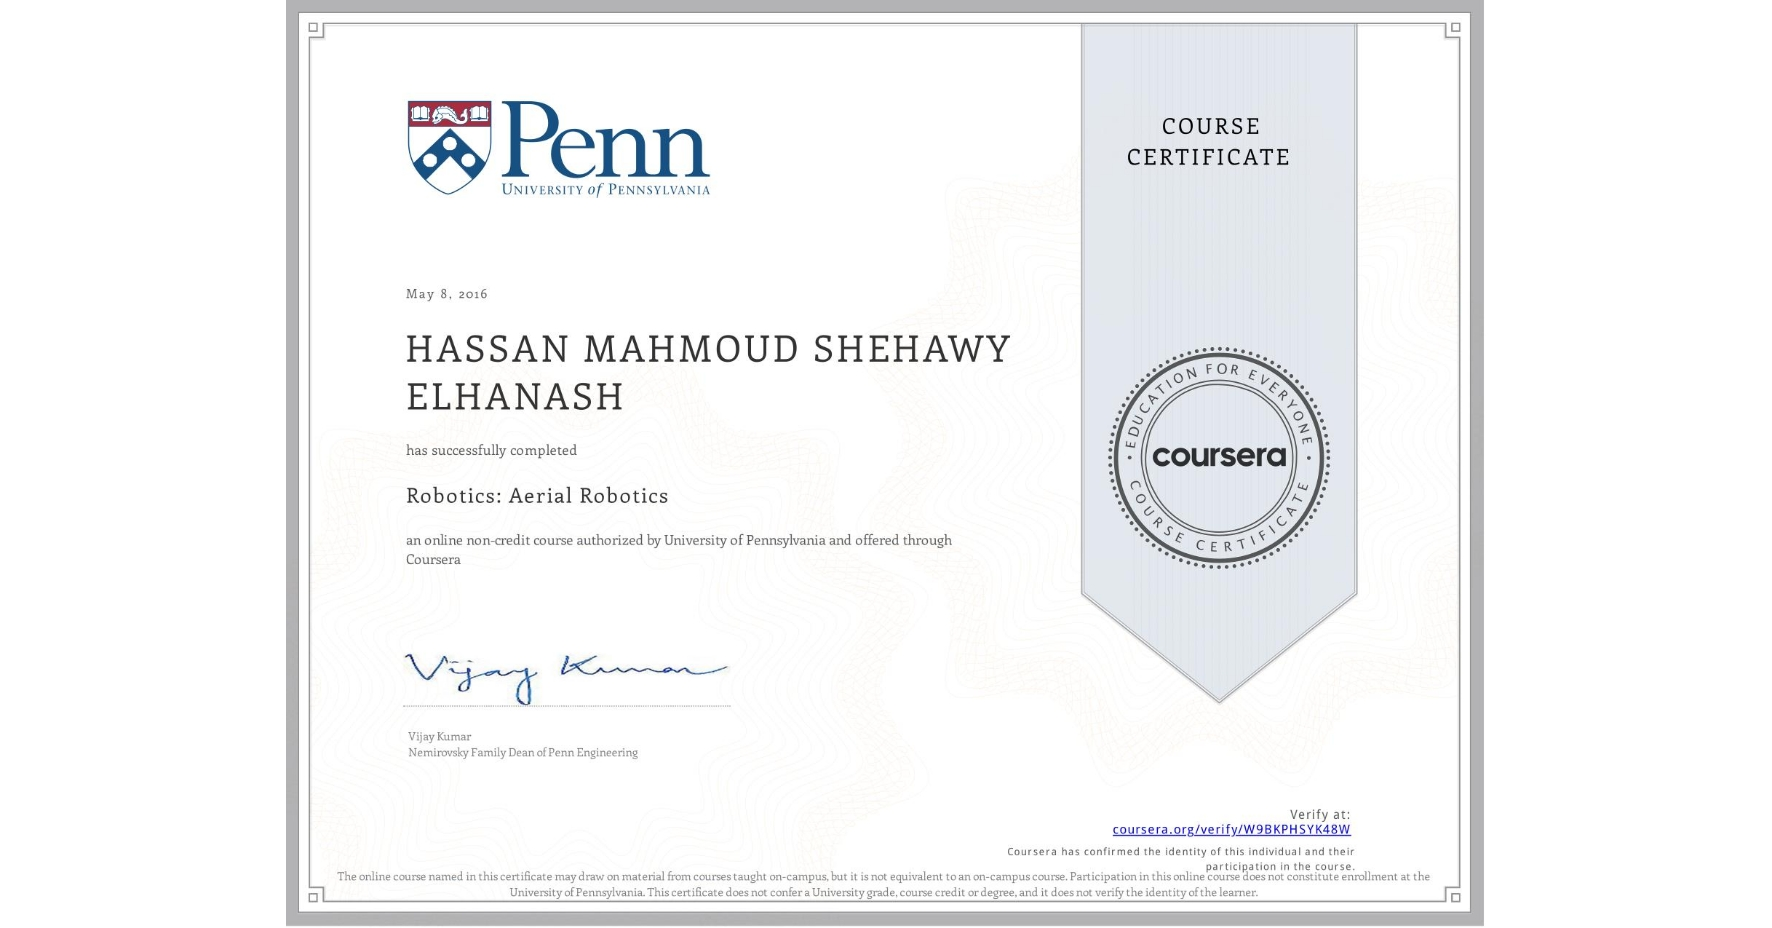 View certificate for HASSAN MAHMOUD SHEHAWY ELHANASH, Robotics: Aerial Robotics, an online non-credit course authorized by University of Pennsylvania and offered through Coursera